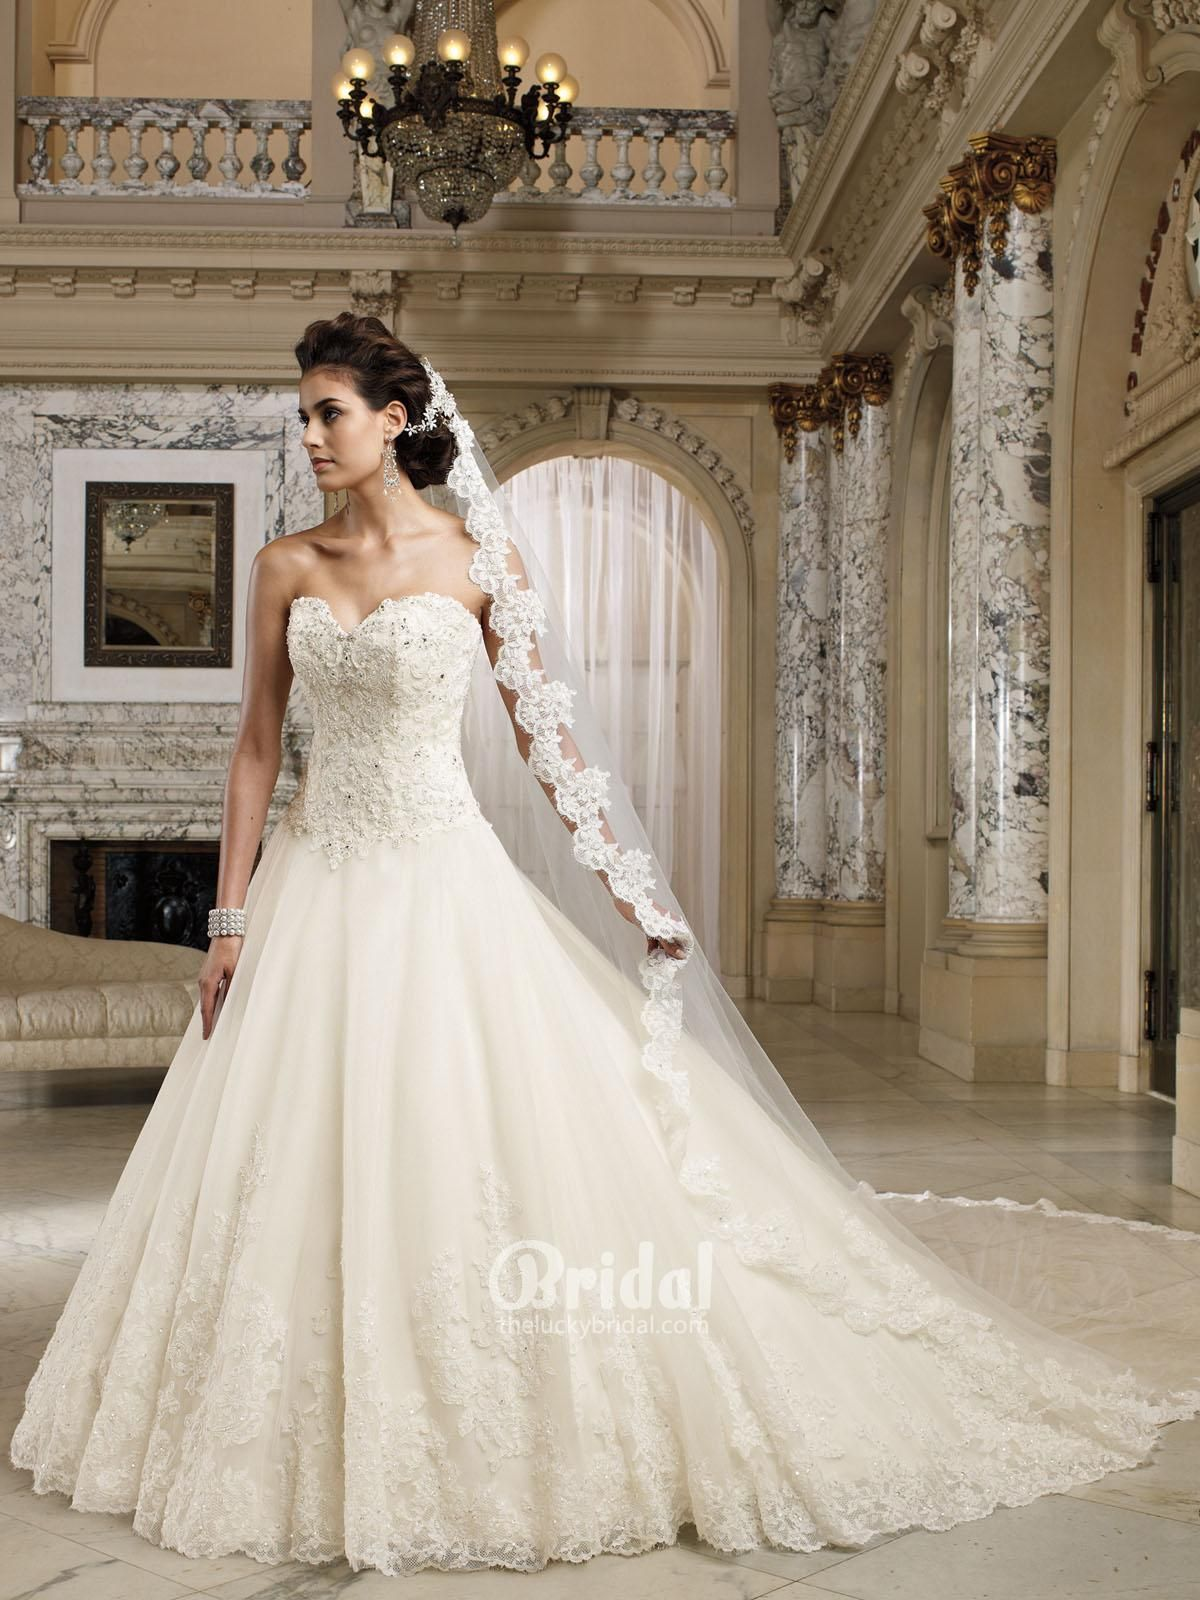 wedding dresses lace - Google Search | Pretty Wedding Dresses ...